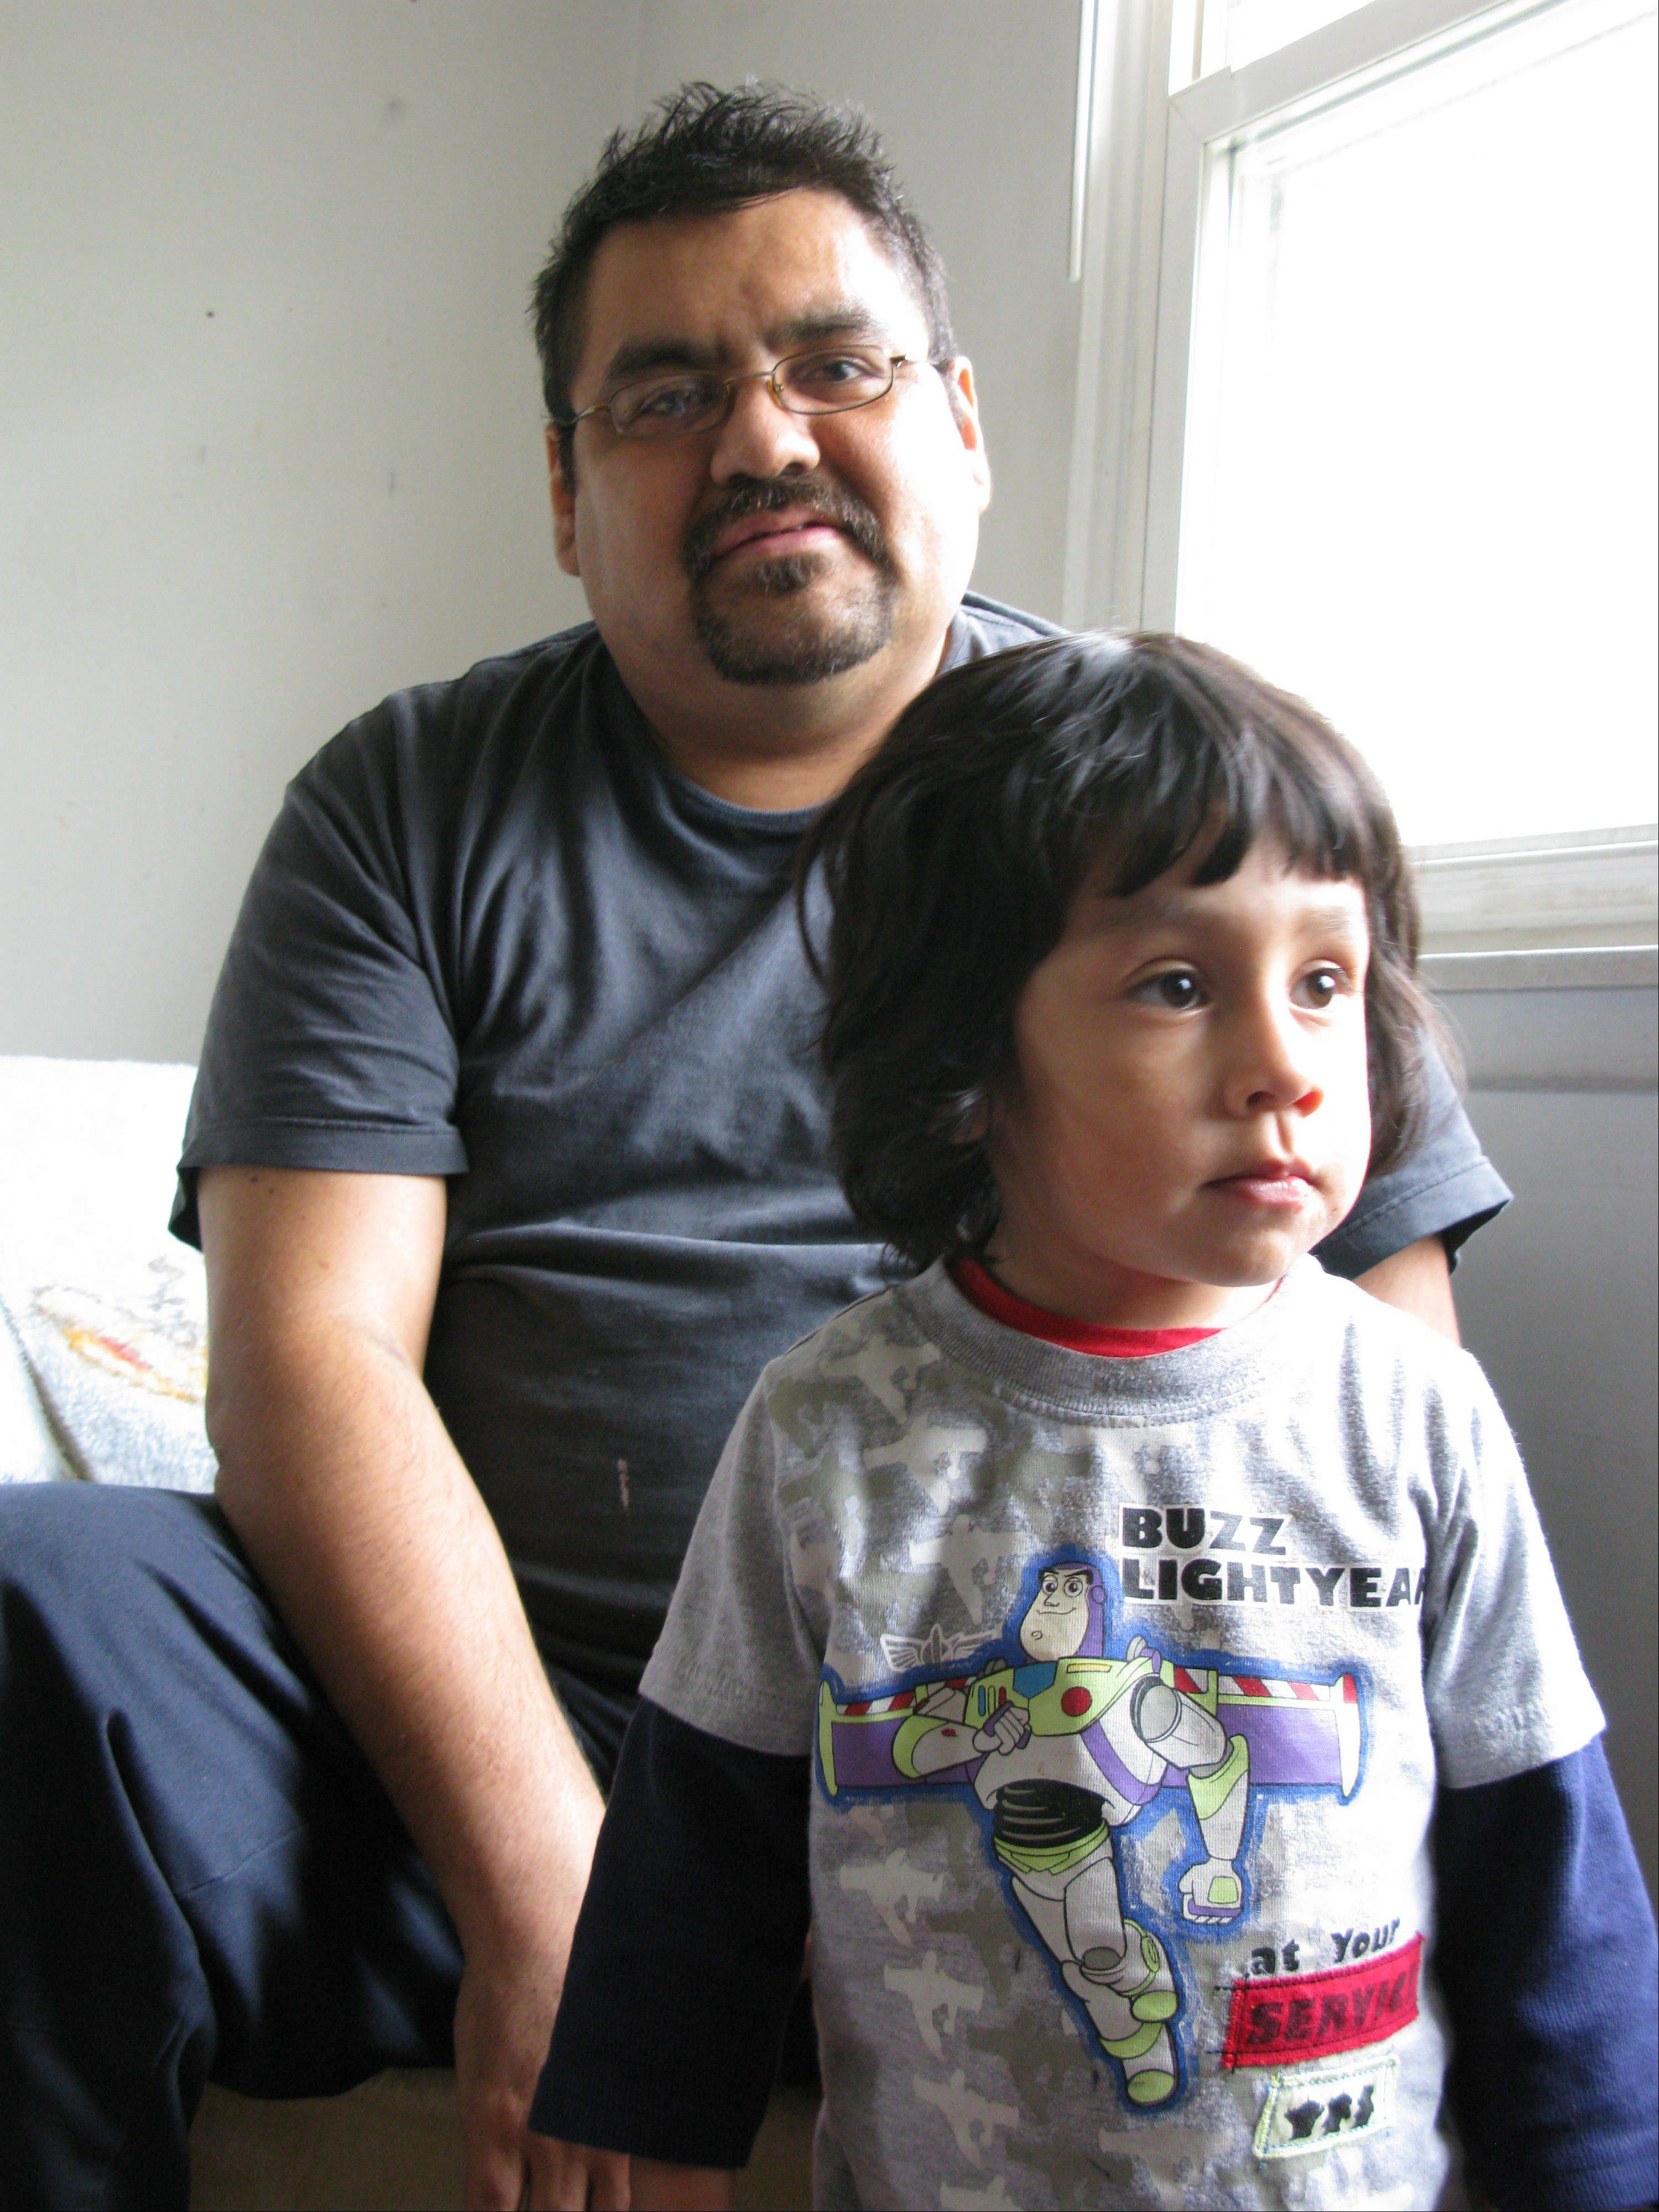 Neftali Hernandez, 35, pictured here with his nephew, Joel, suffers from aplastic anemia and is in need of a donor match for a bone-marrow transplant.